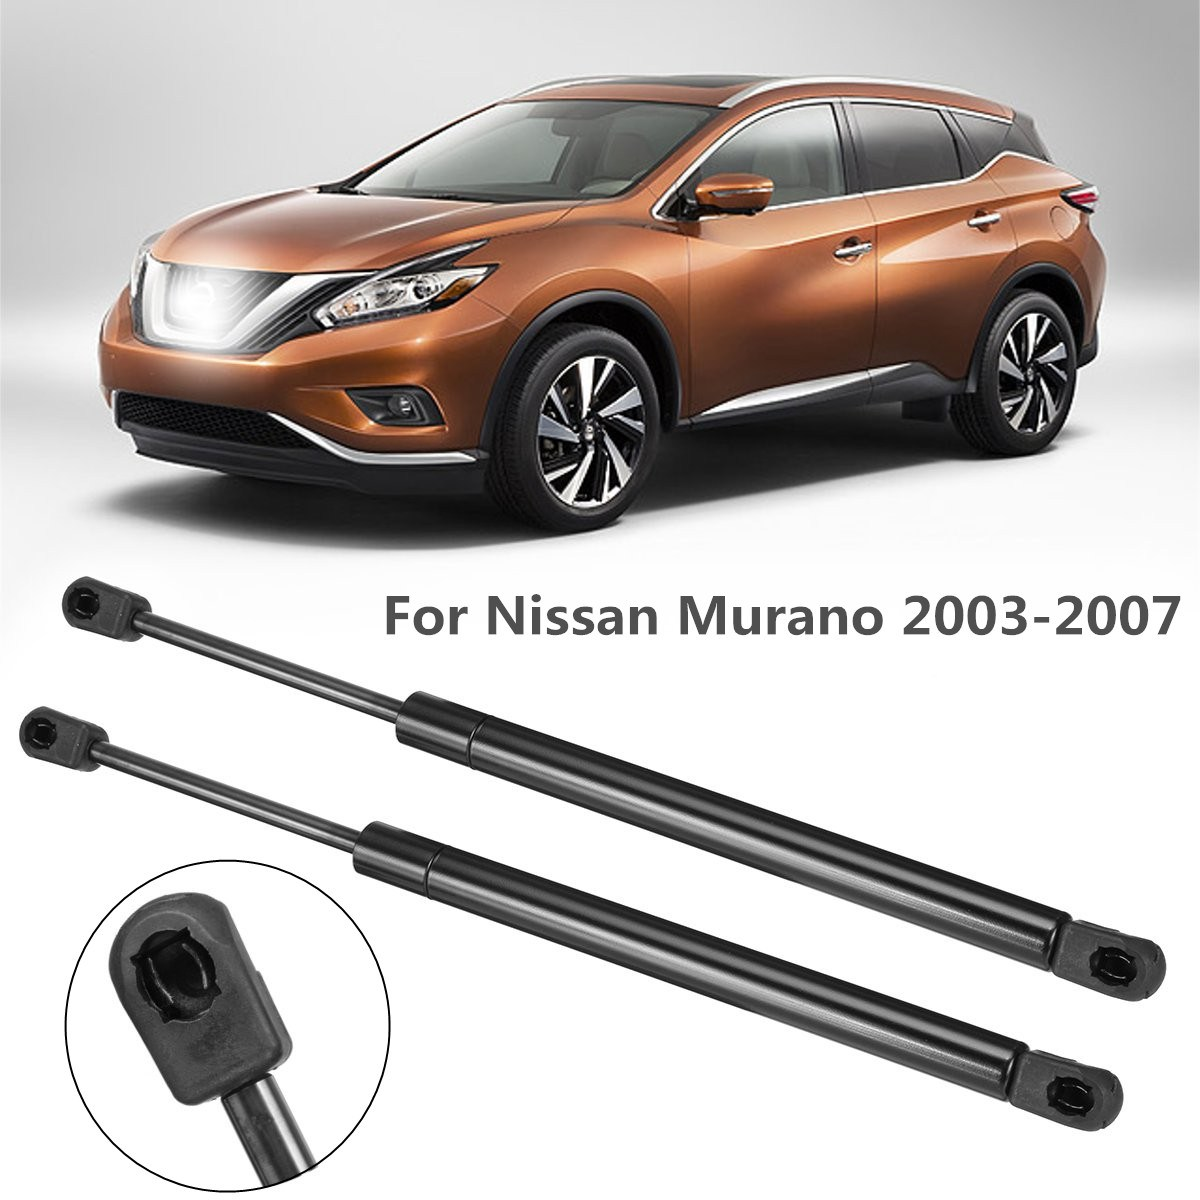 2Pcs Car Front Engine Cover Hood Lift Supports Shock Gas Strut Damper For Nissan Murano 2003 2004 2005 2006 2007|damper shock|damper hood|damper car - title=